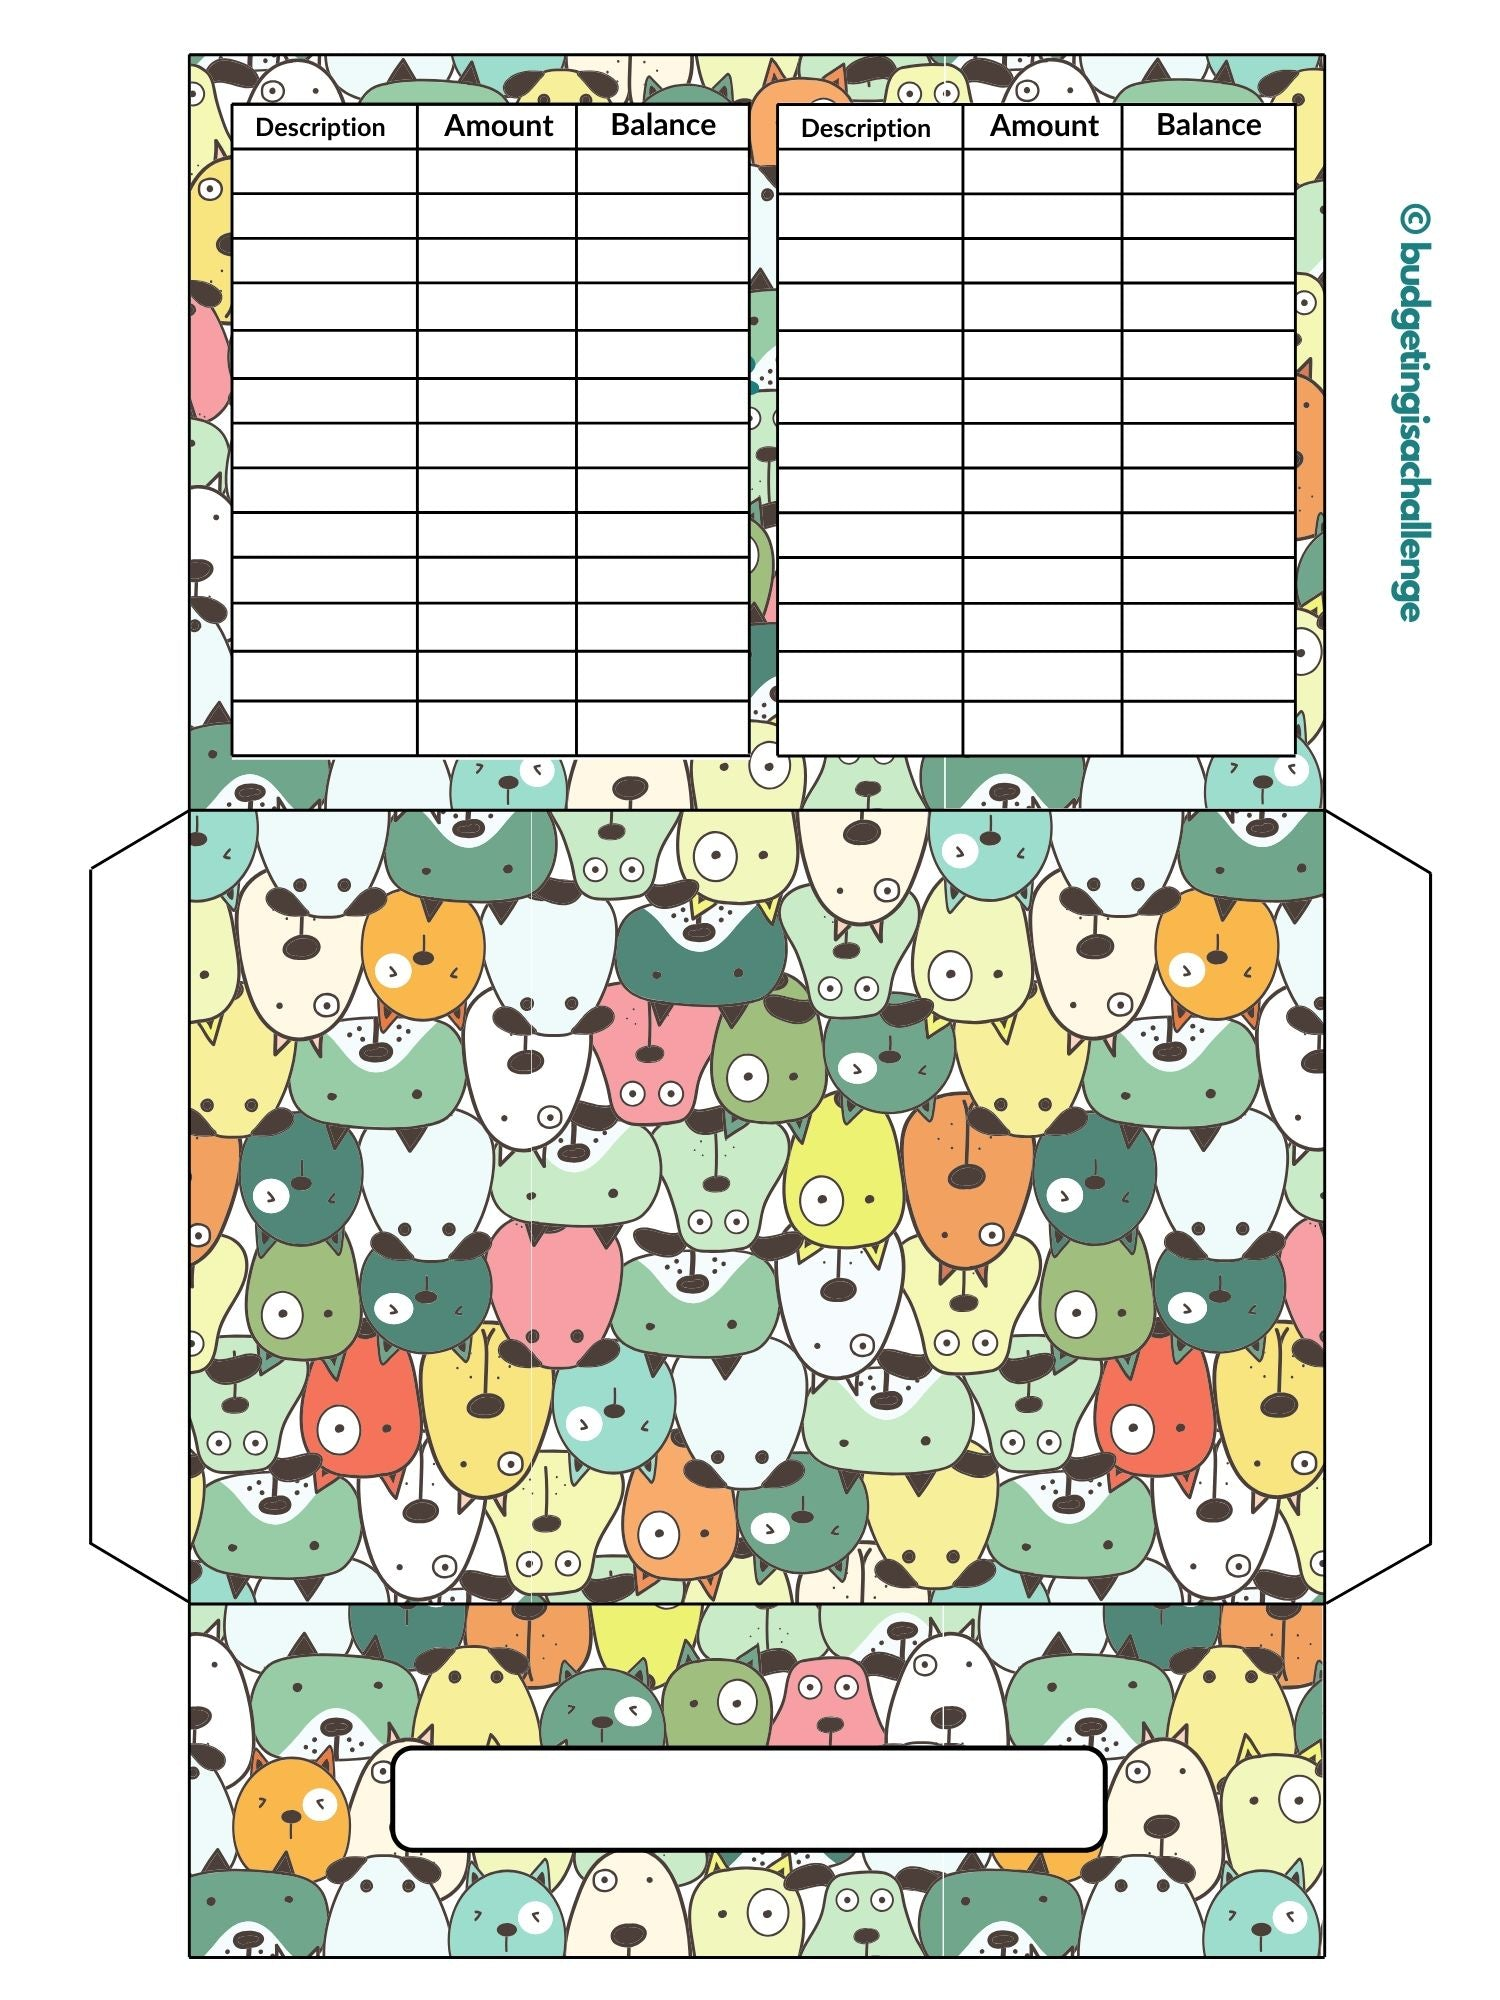 Cute dog cash envelope. Cash envelopes can help you limit your spending. This comes free with the budget sheet mini bundle.